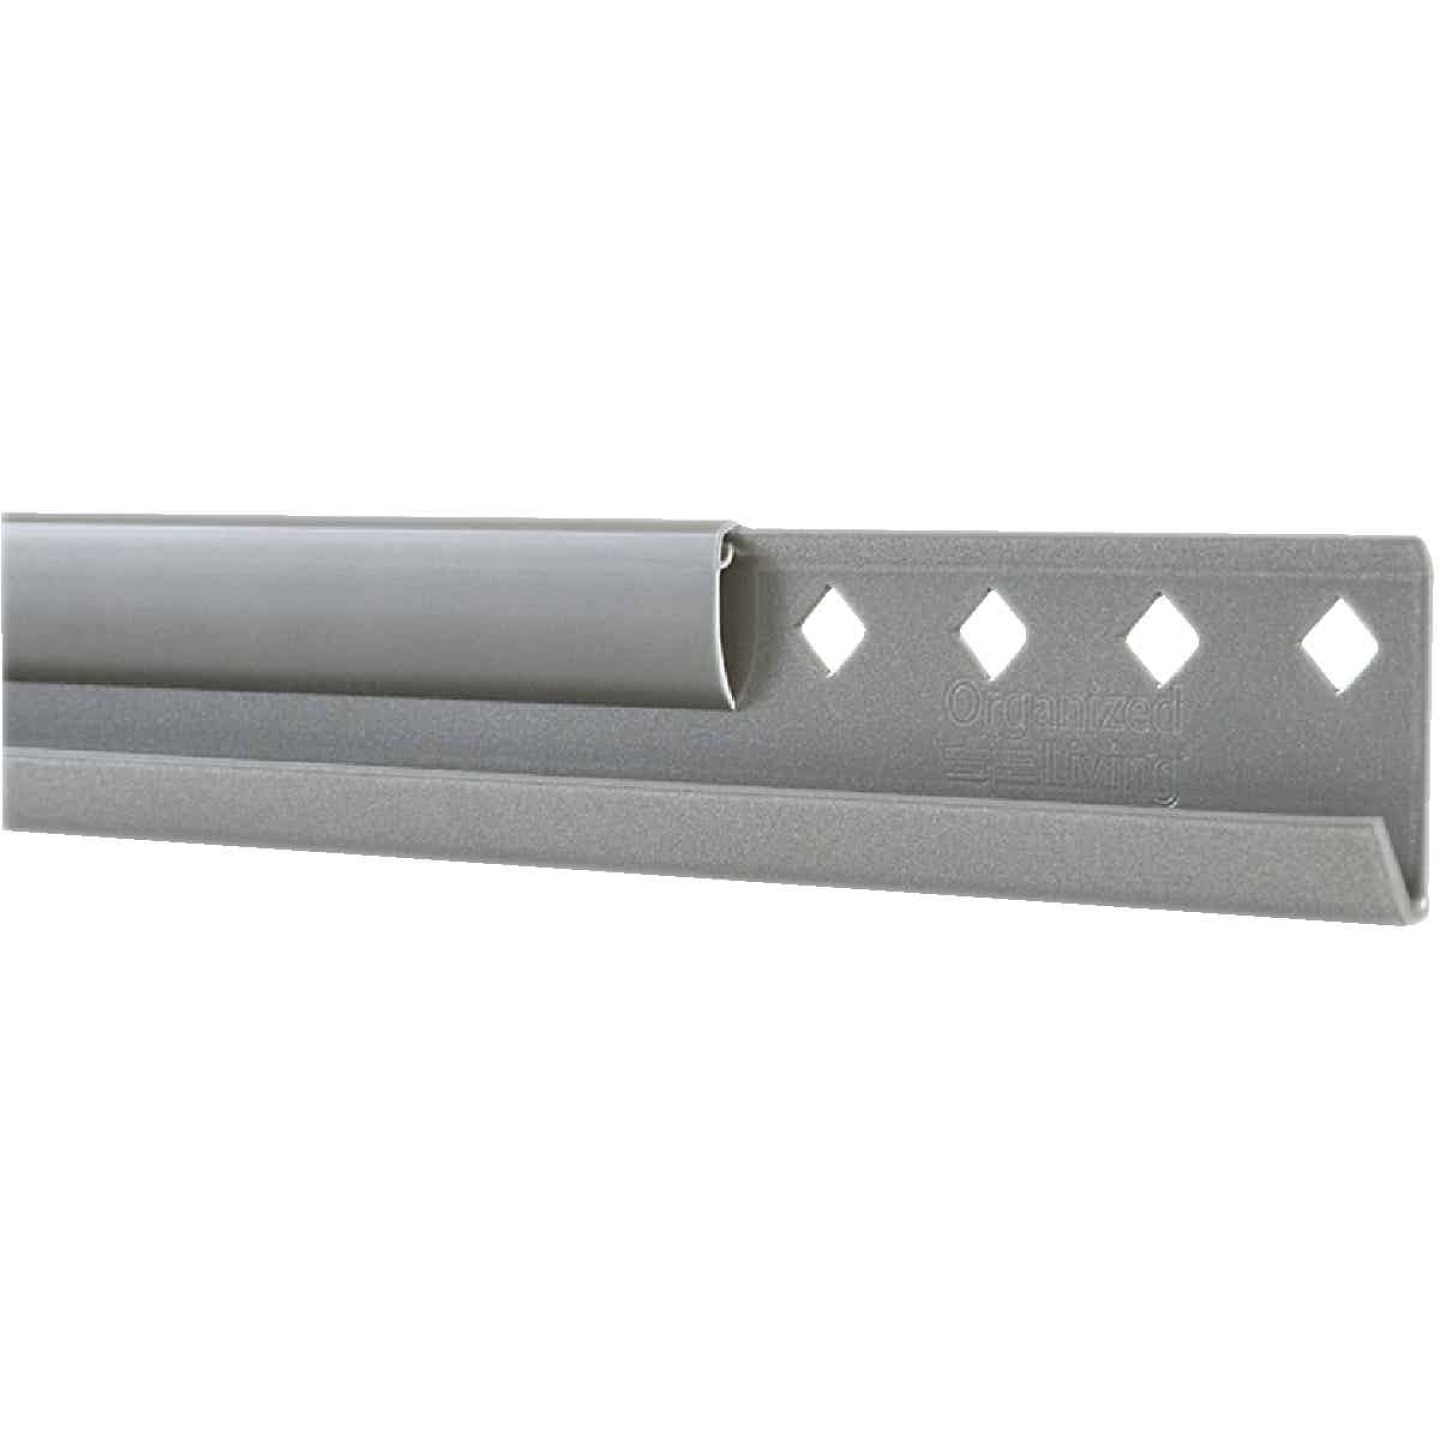 FreedomRail 78 In. Nickel Horizontal Hanging Rail with Cover Image 1